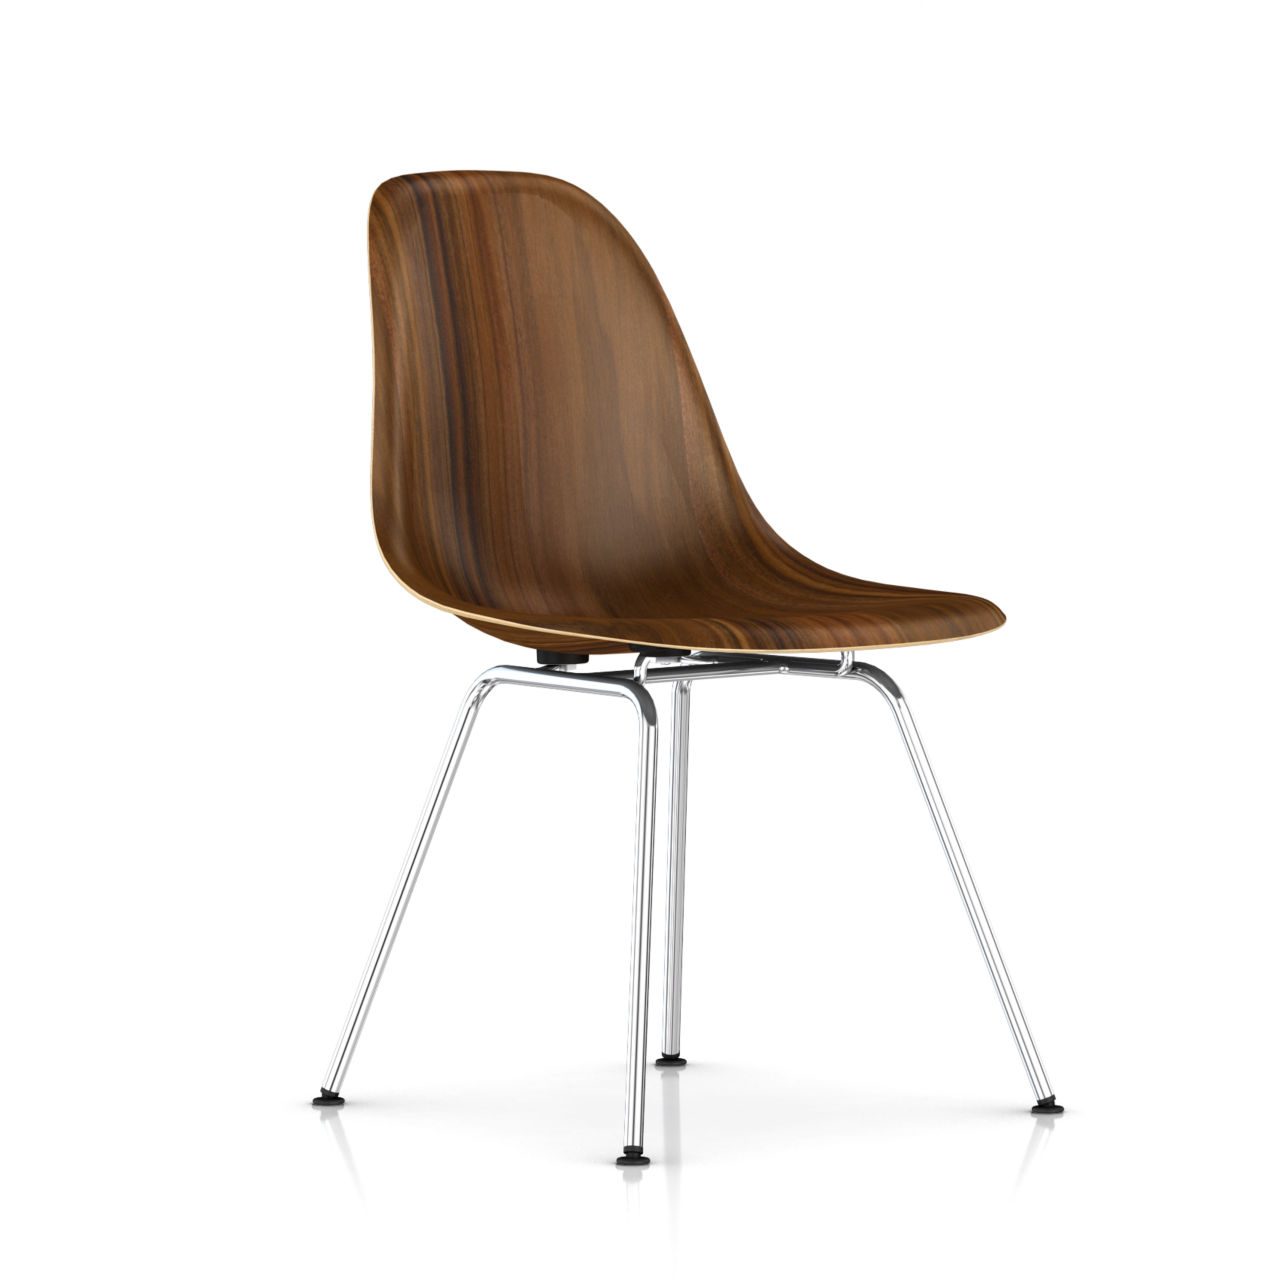 Eames Molded Wood Side Chair with 4 Leg Base by Herman Miller